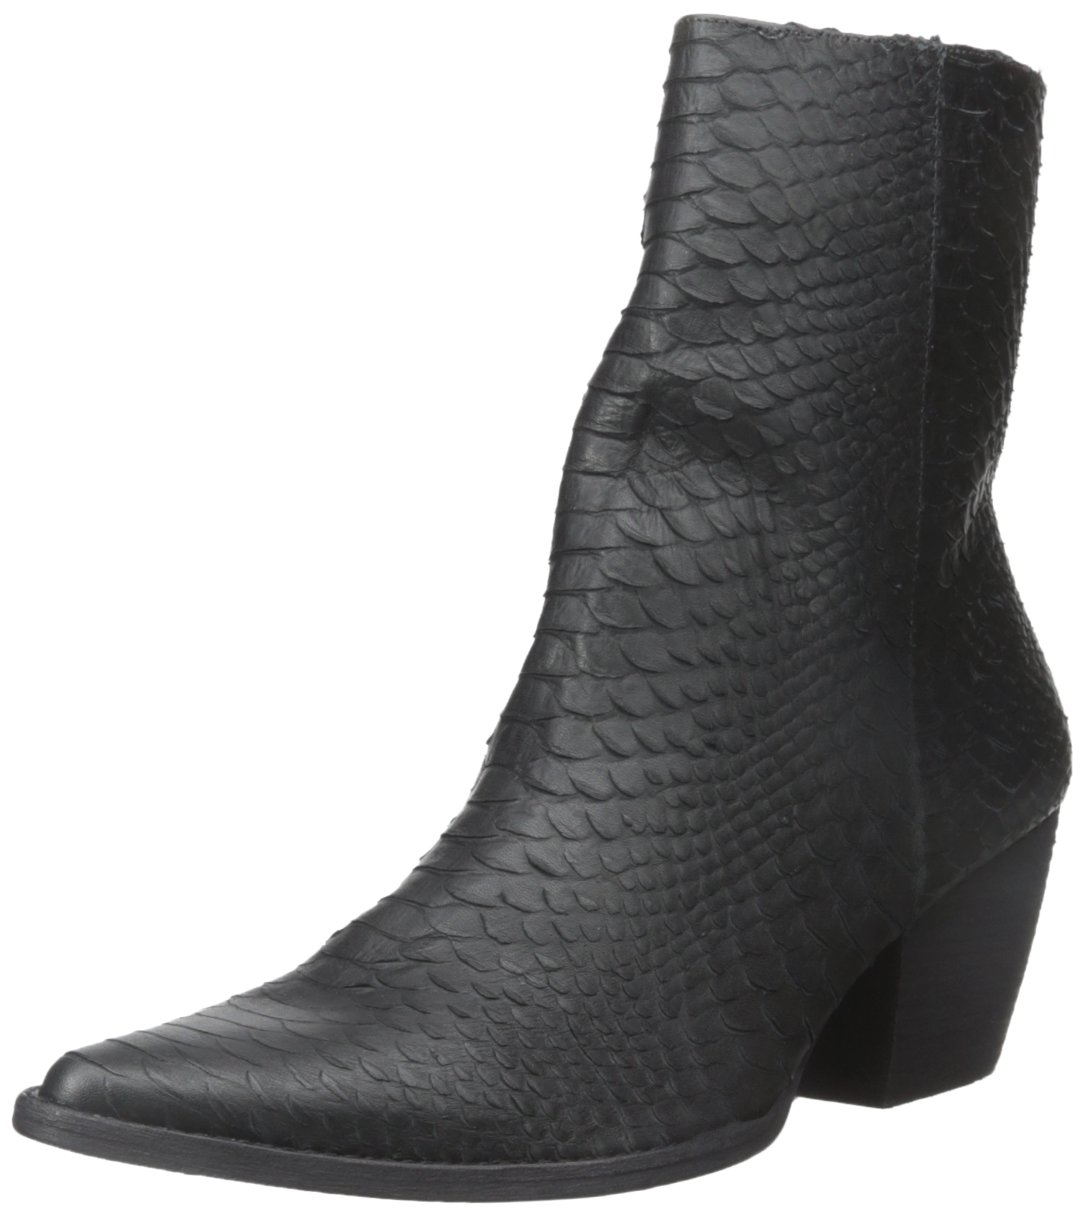 Matisse Women's Caty Boot B000KNEICS 9.5 B(M) US|Black